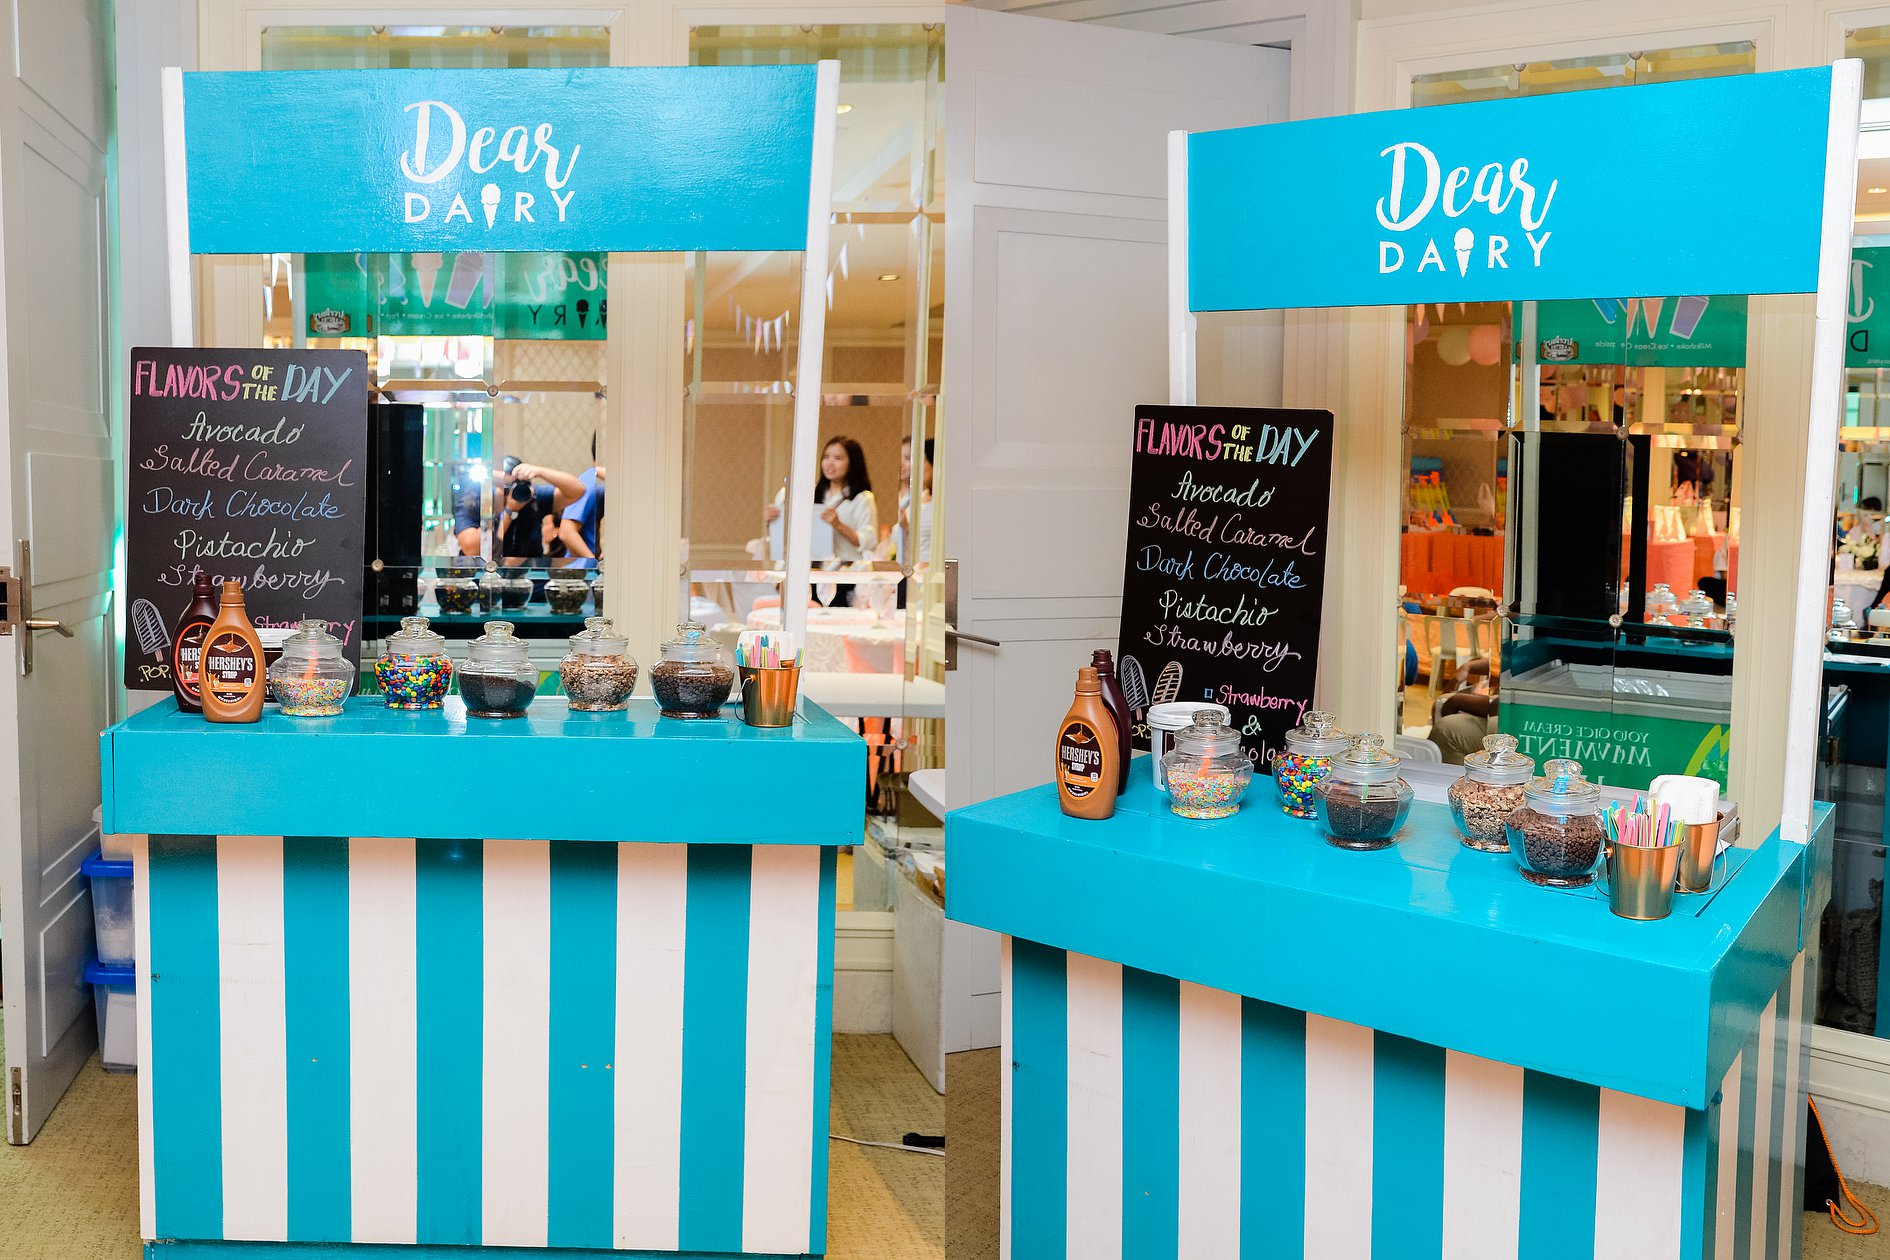 Dear Dairy Ice Cream Party Cart